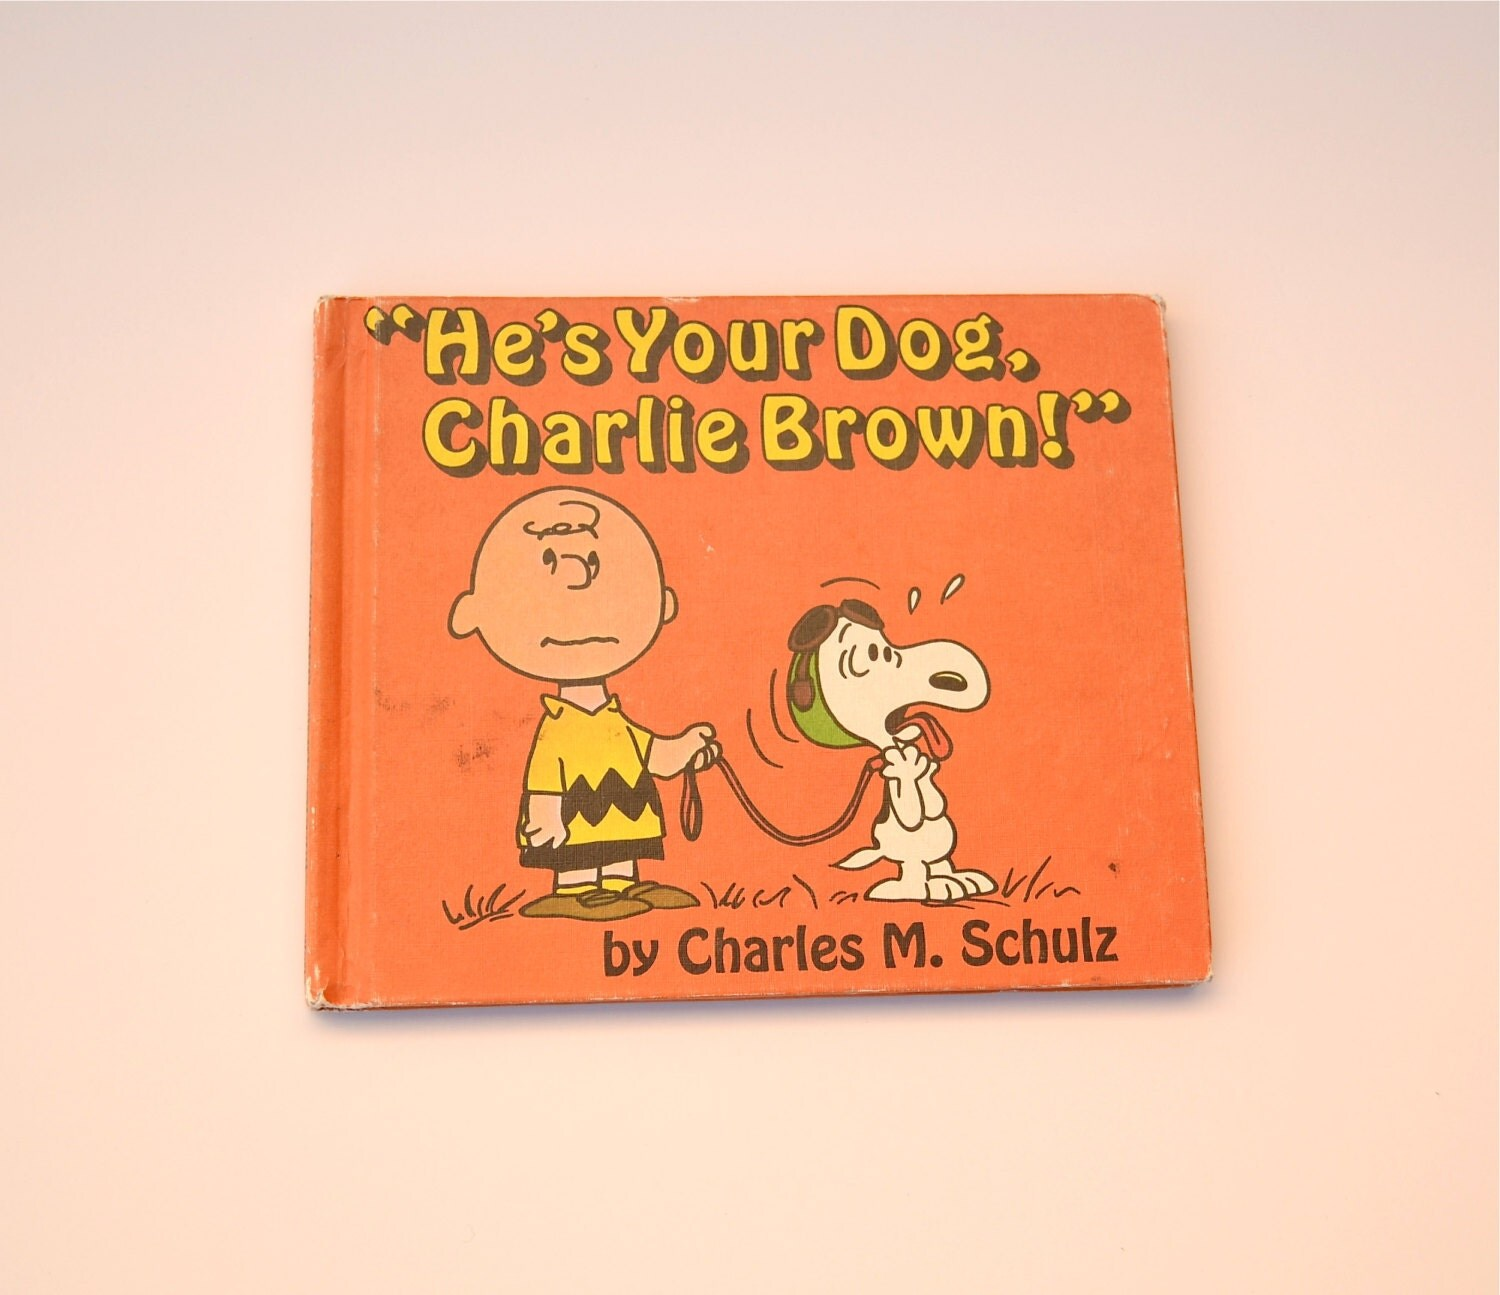 He's Your Dog Charlie Brown Book 1968 First Edition By Charles M. Schulz - LindasTimeCompass